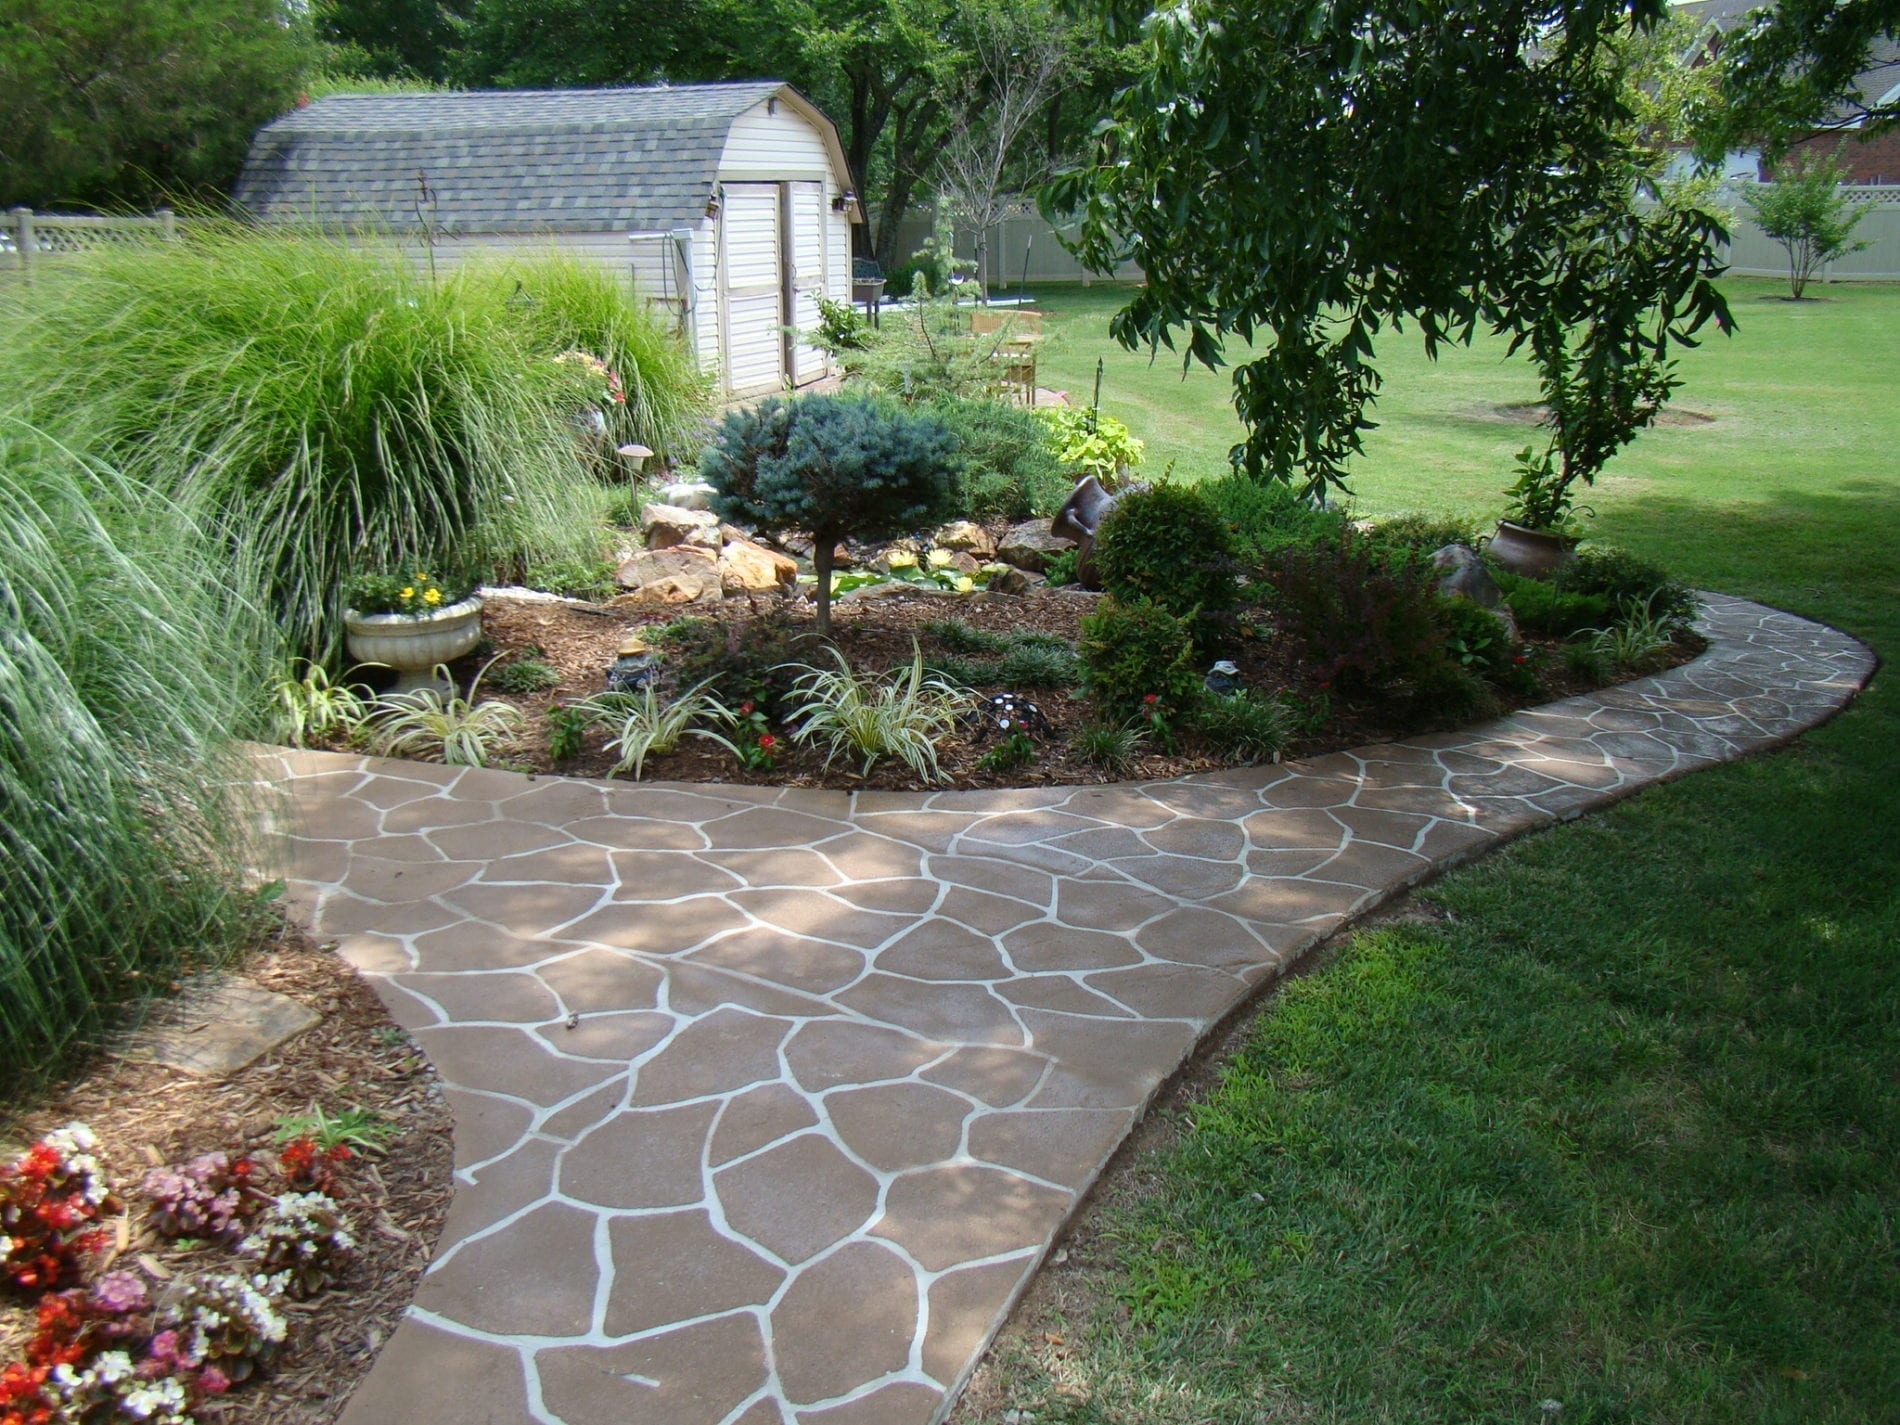 Design by project: Create a Unique Living Space with Outdoor Decorative Concrete